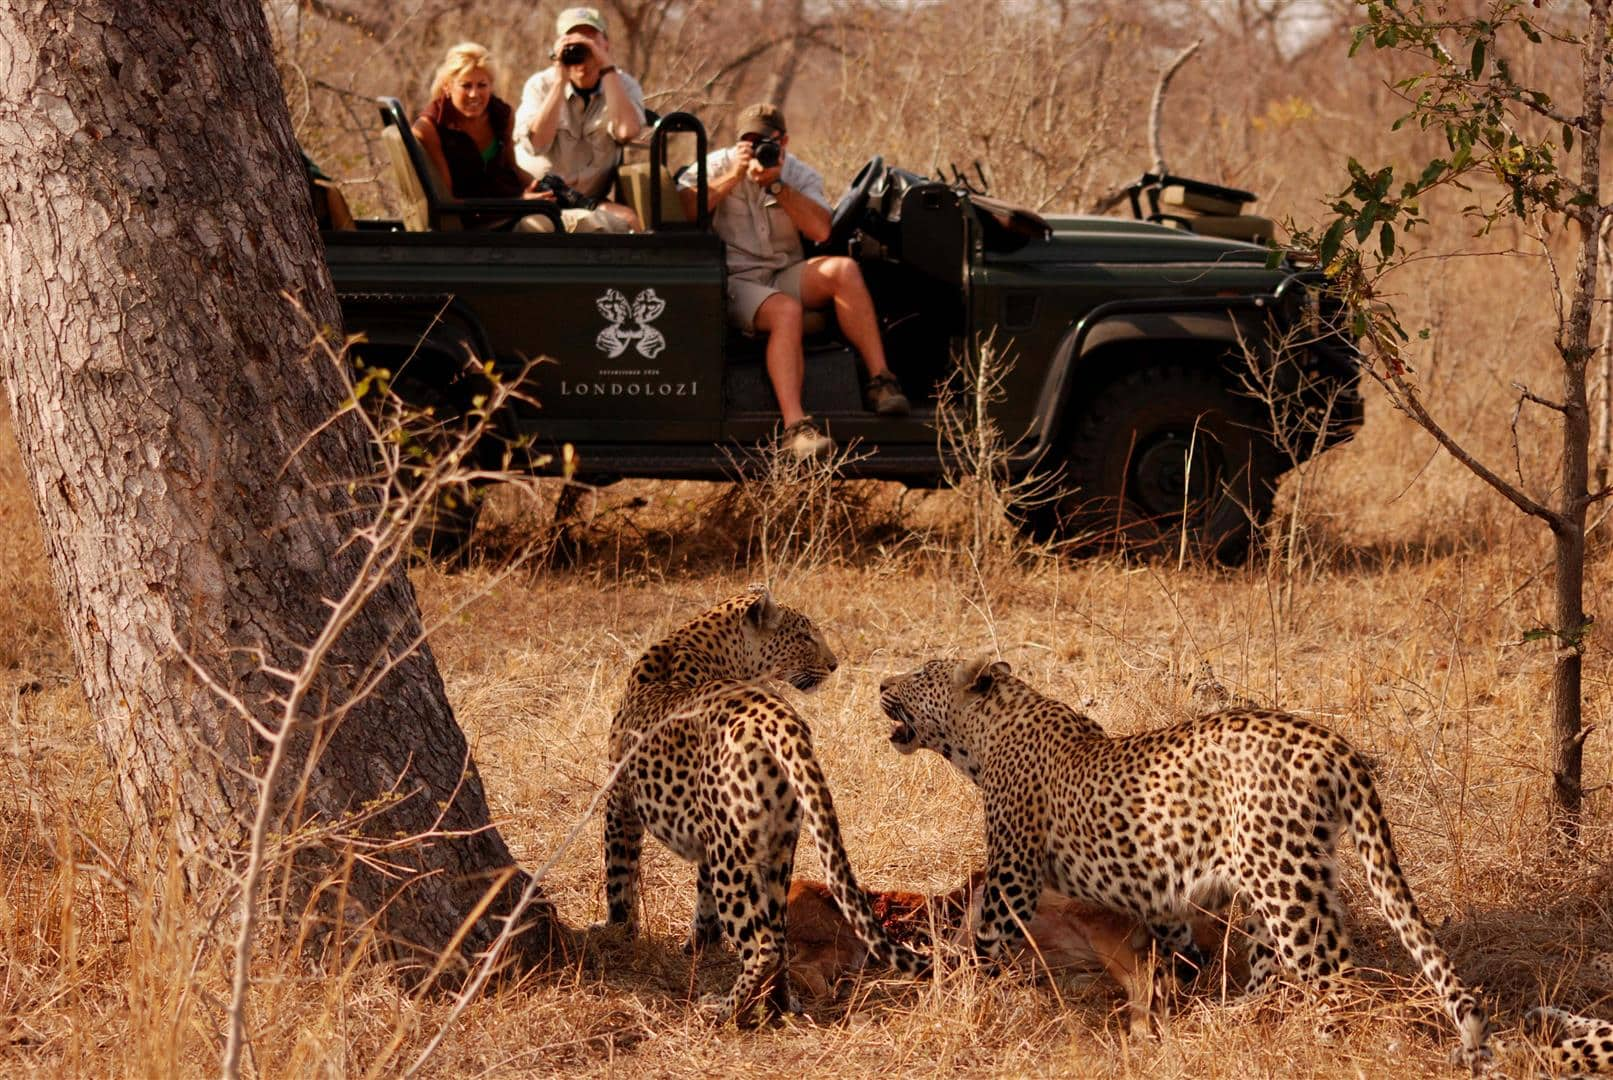 Leopard viewing on Londolozi photographic safari